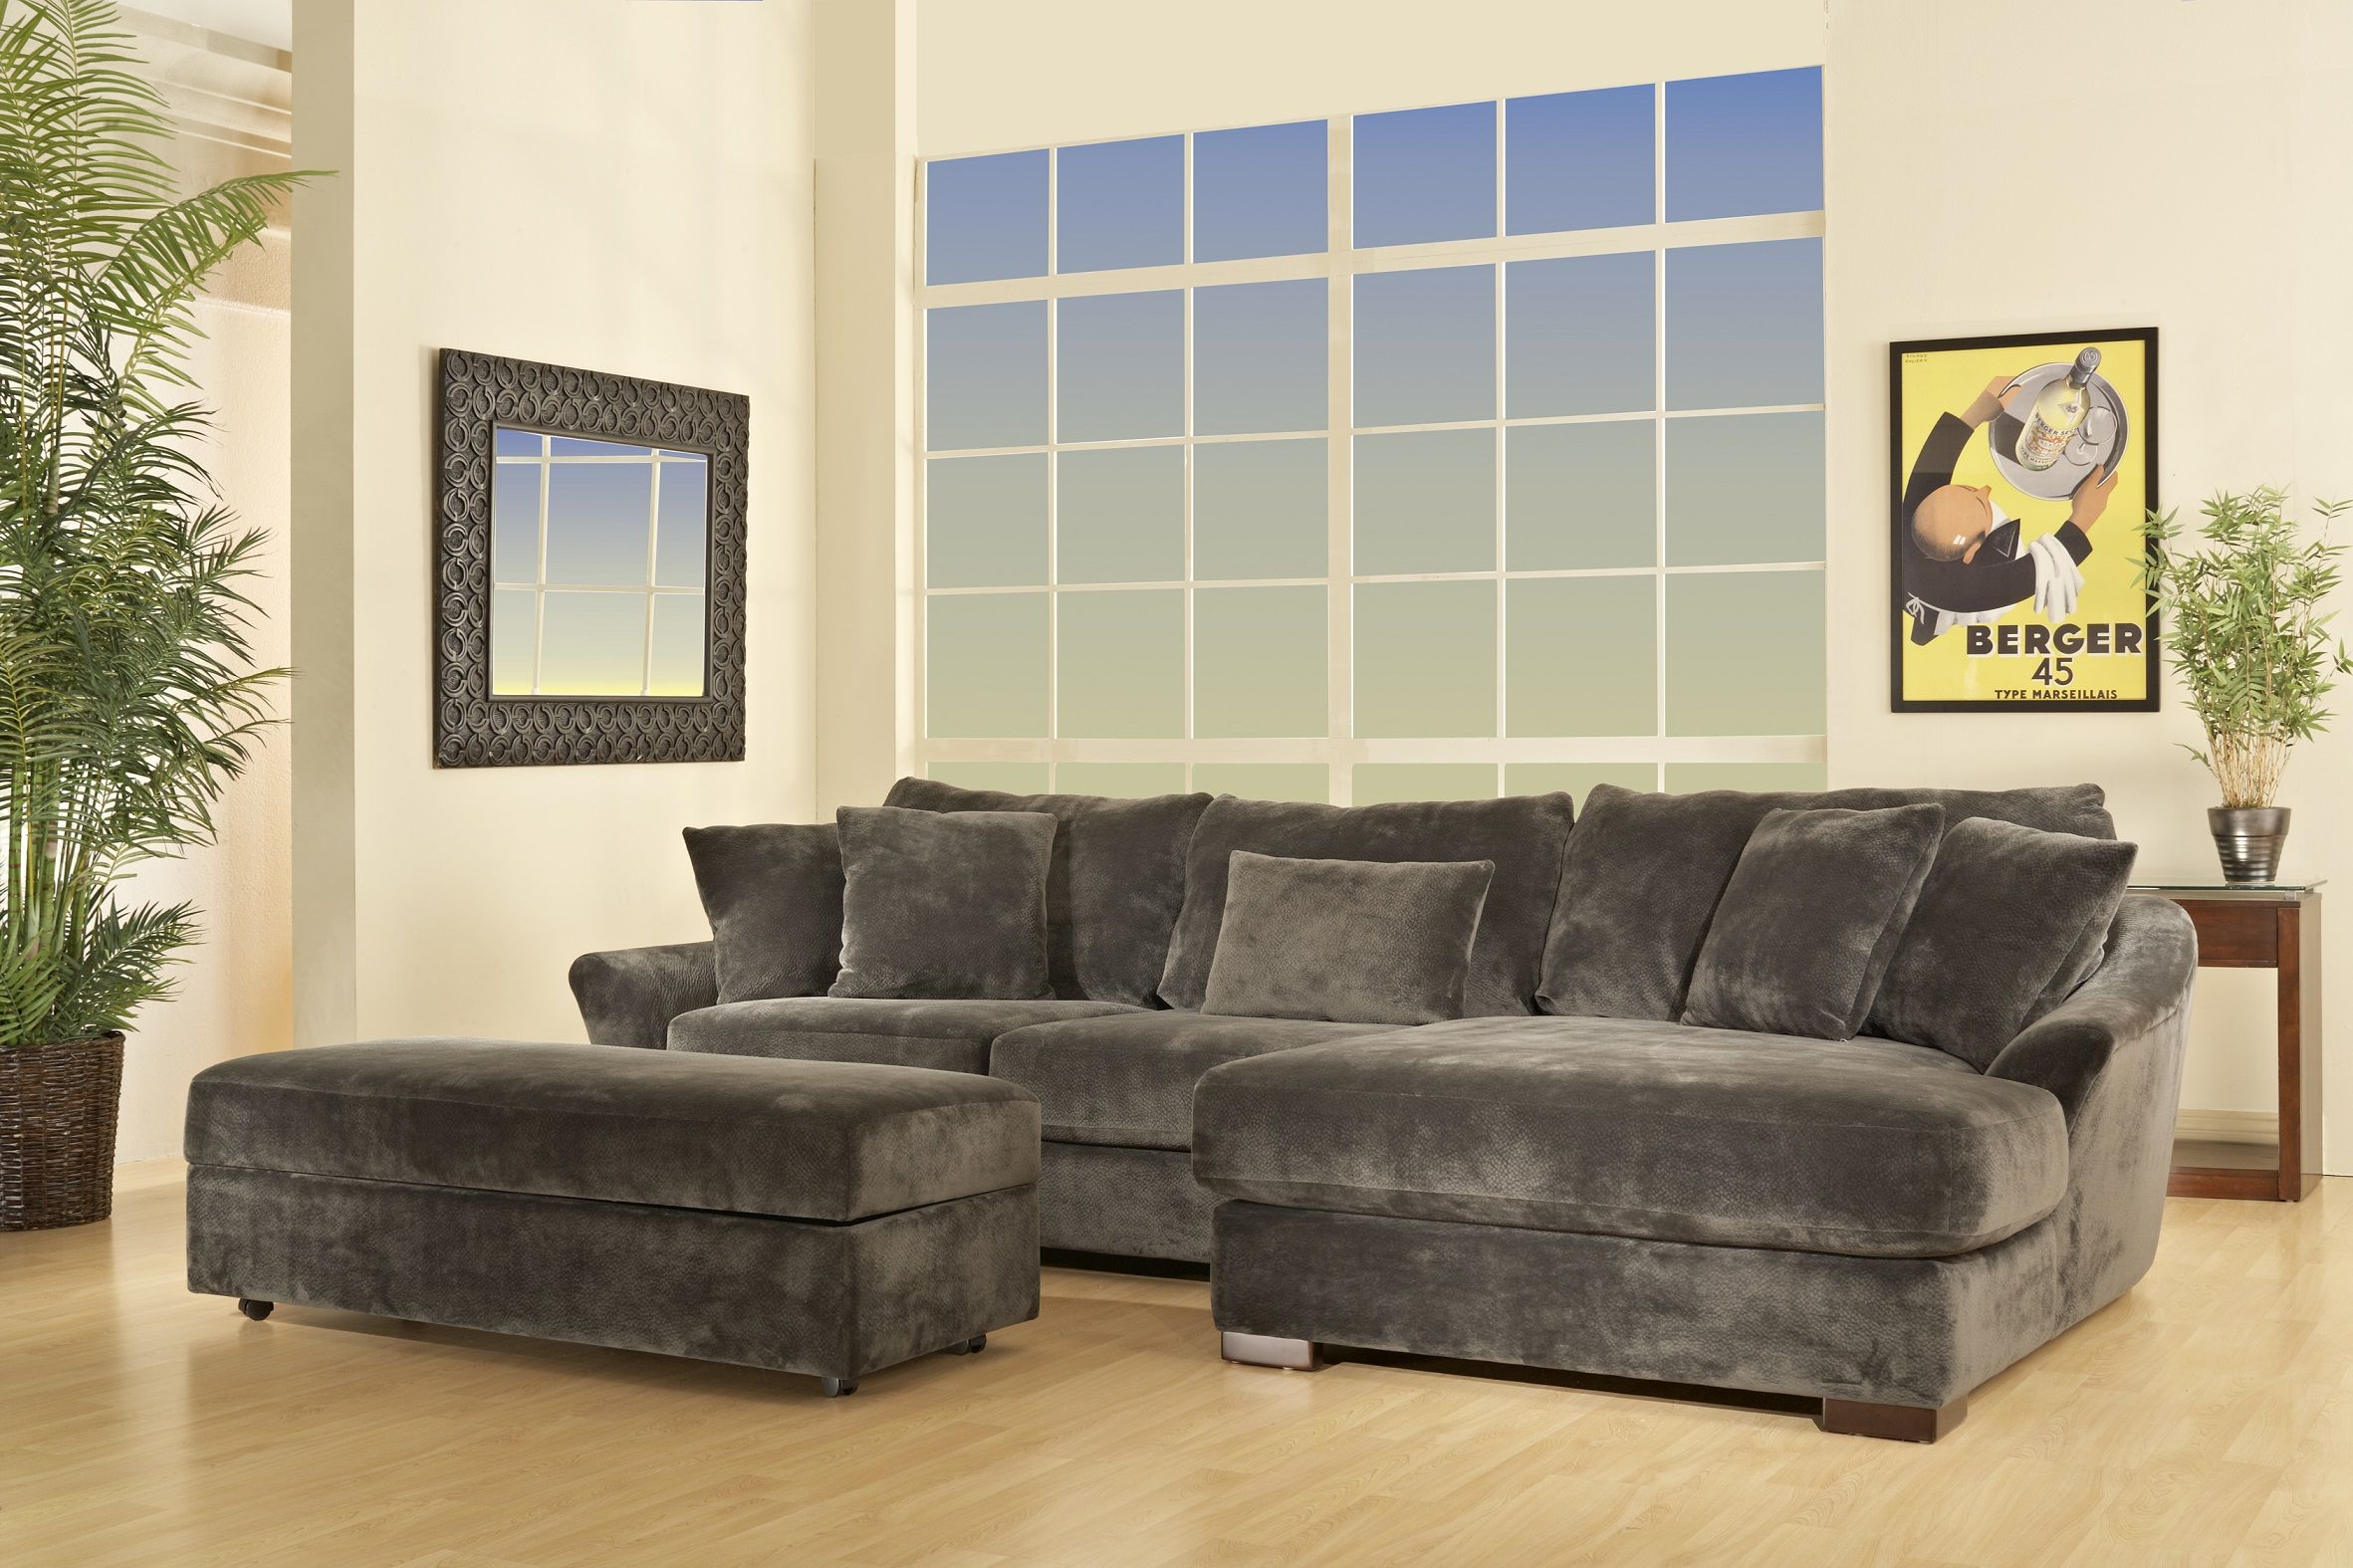 Discount Oversized Sectional Sofa With Chaise Google Search Chaise Sectional Sofas Sofa